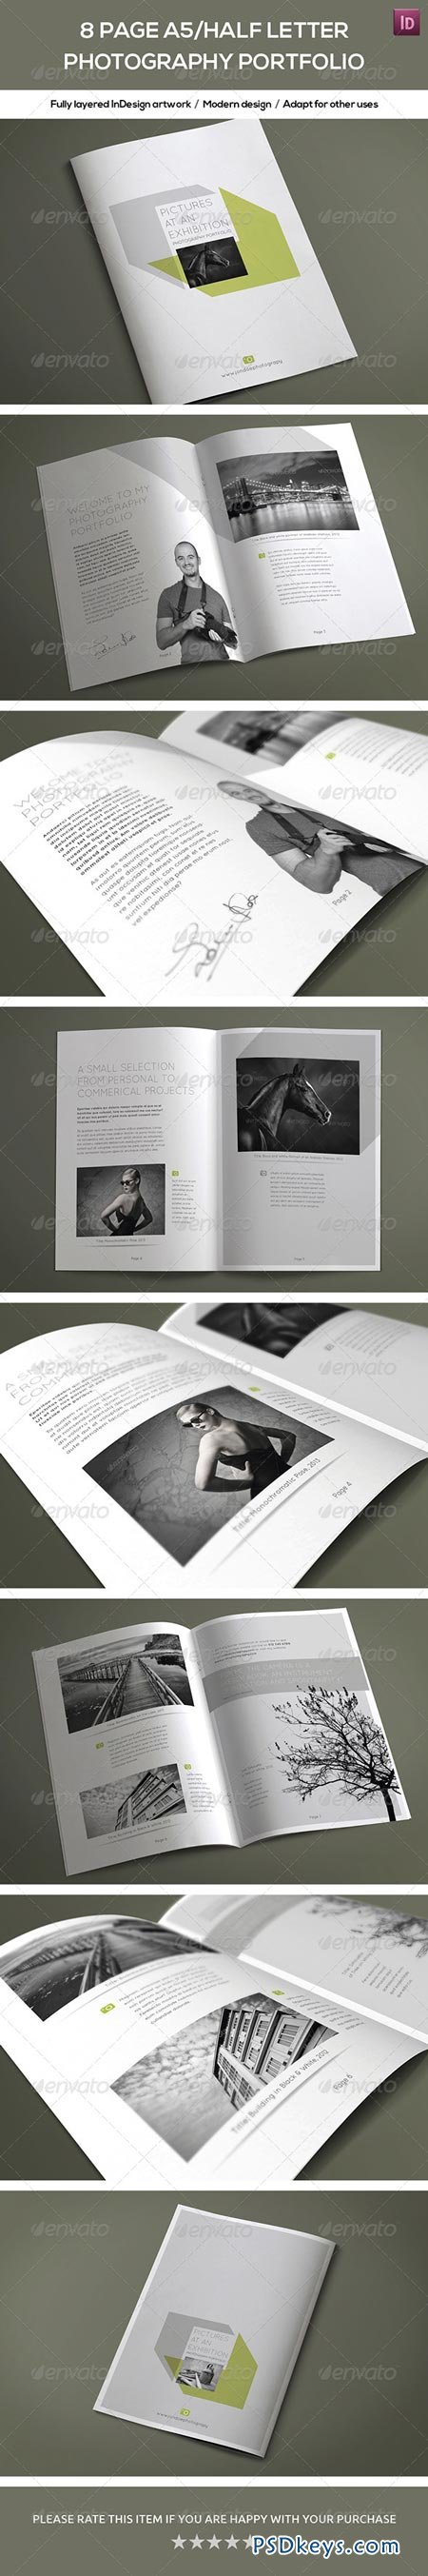 8 Page A5 Half Letter Photography Portfolio 7821445